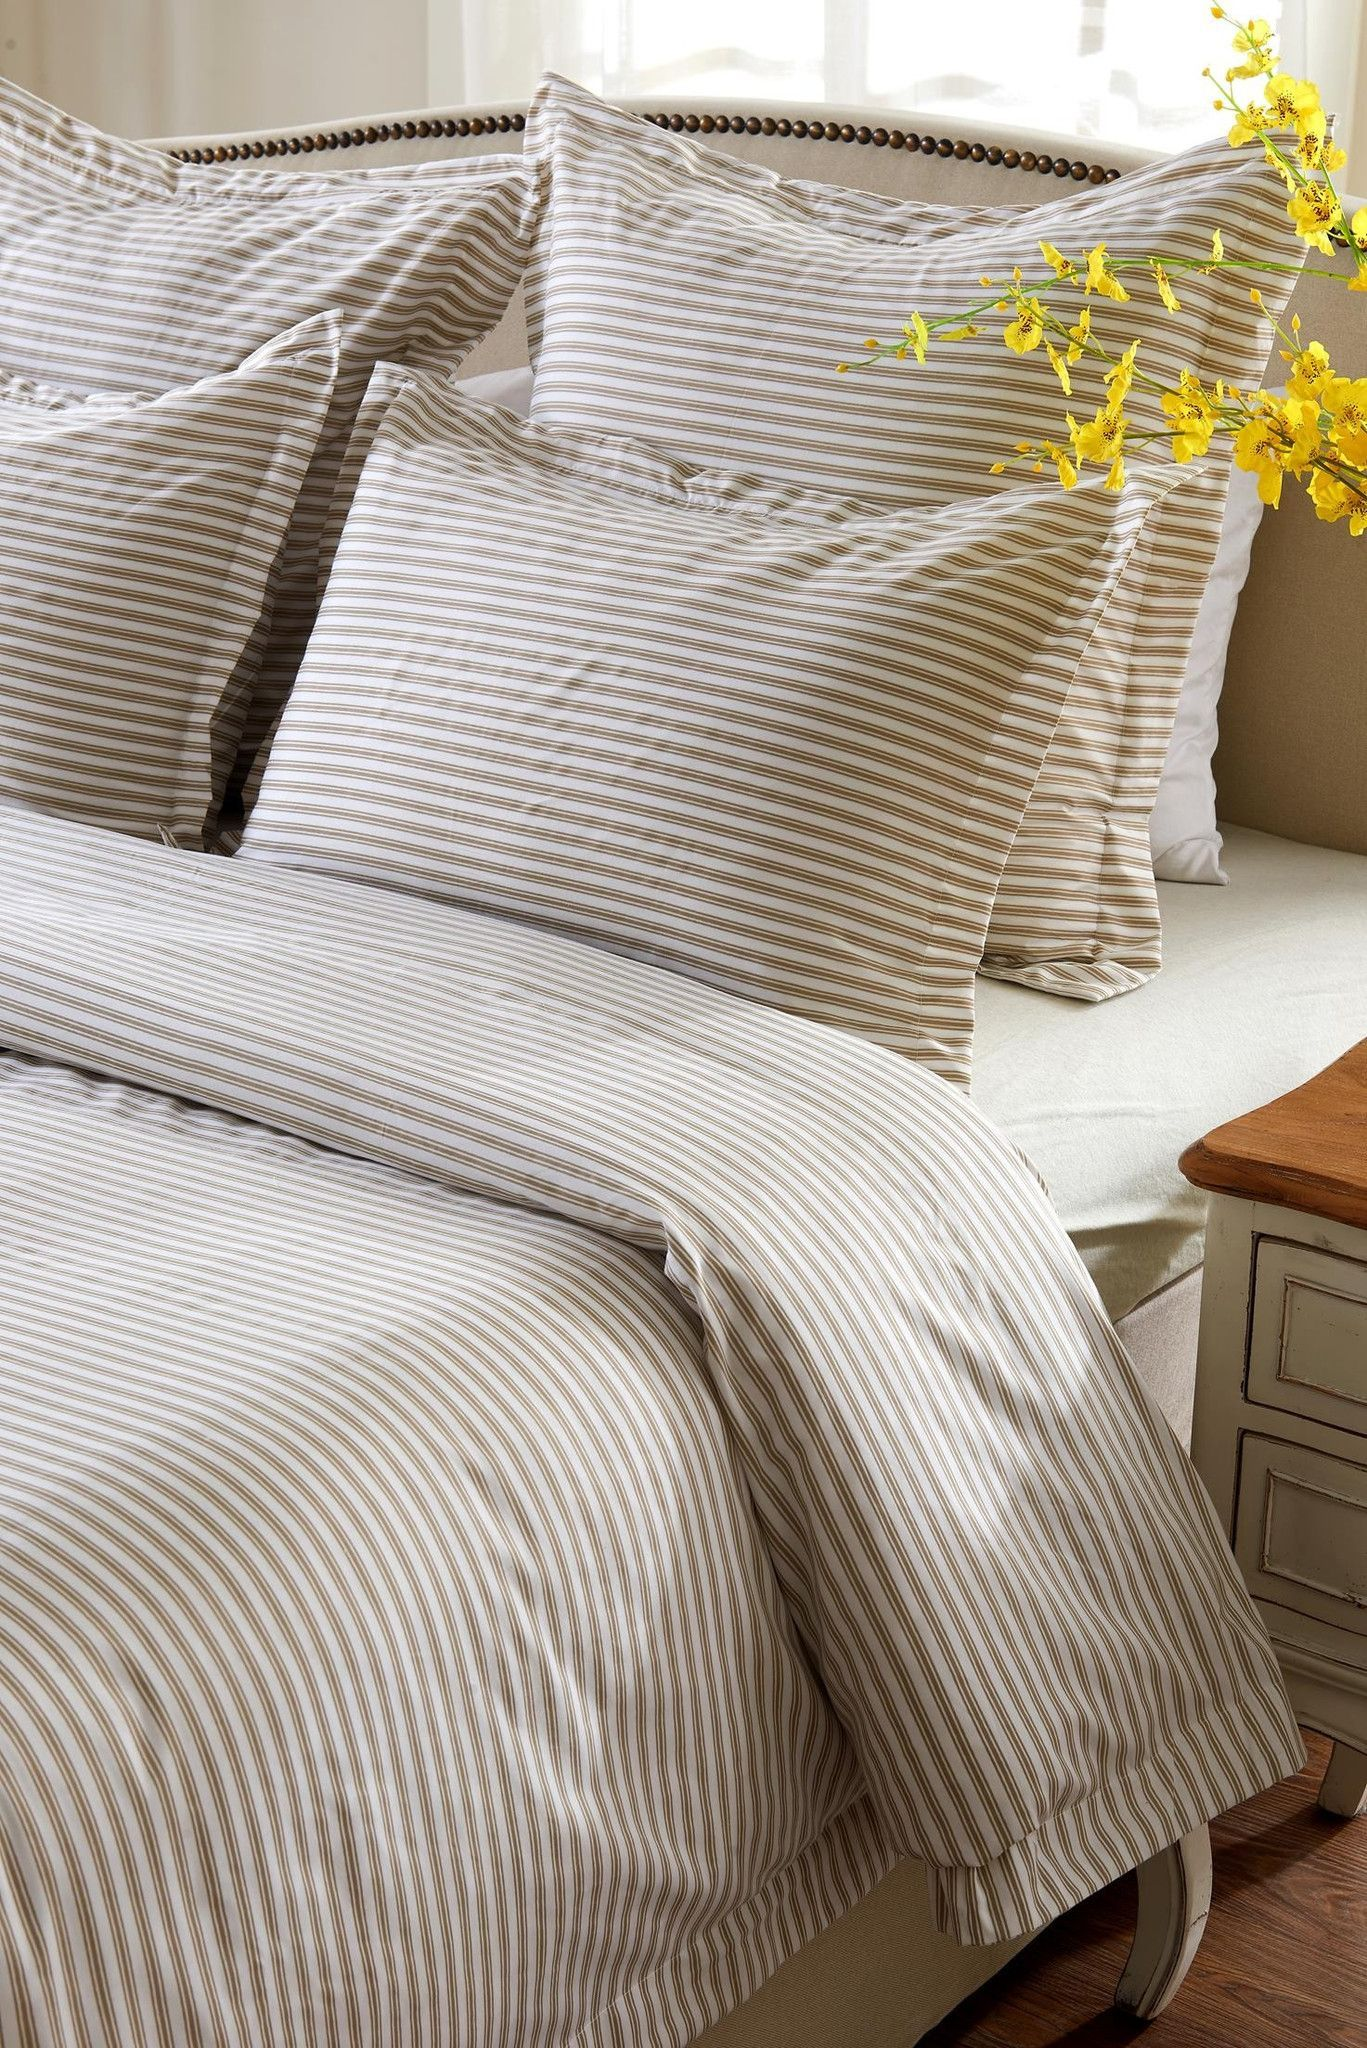 6pc Taupe White Striped Bedding Set Includes Comforter And Duvet